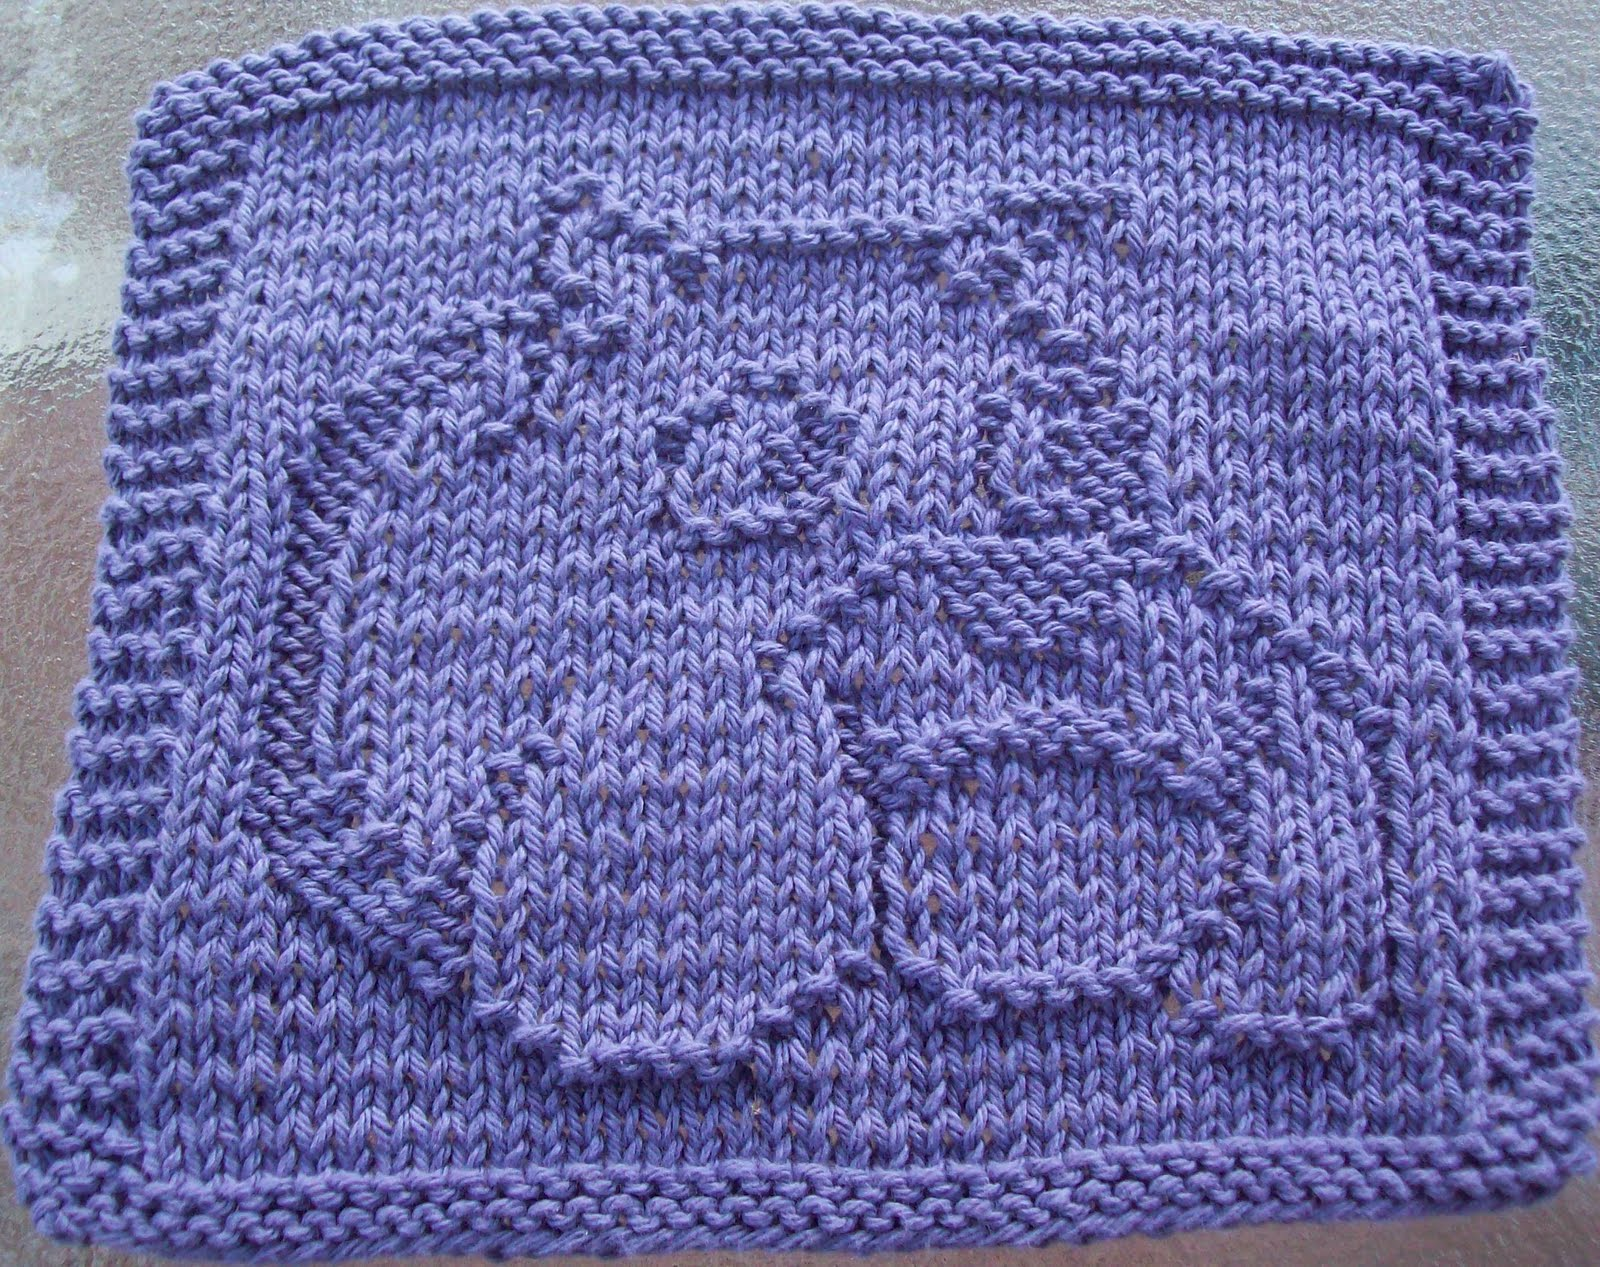 Pattern Knitted Dishcloth : DigKnitty Designs: Bulldog Knit Dishcloth Pattern